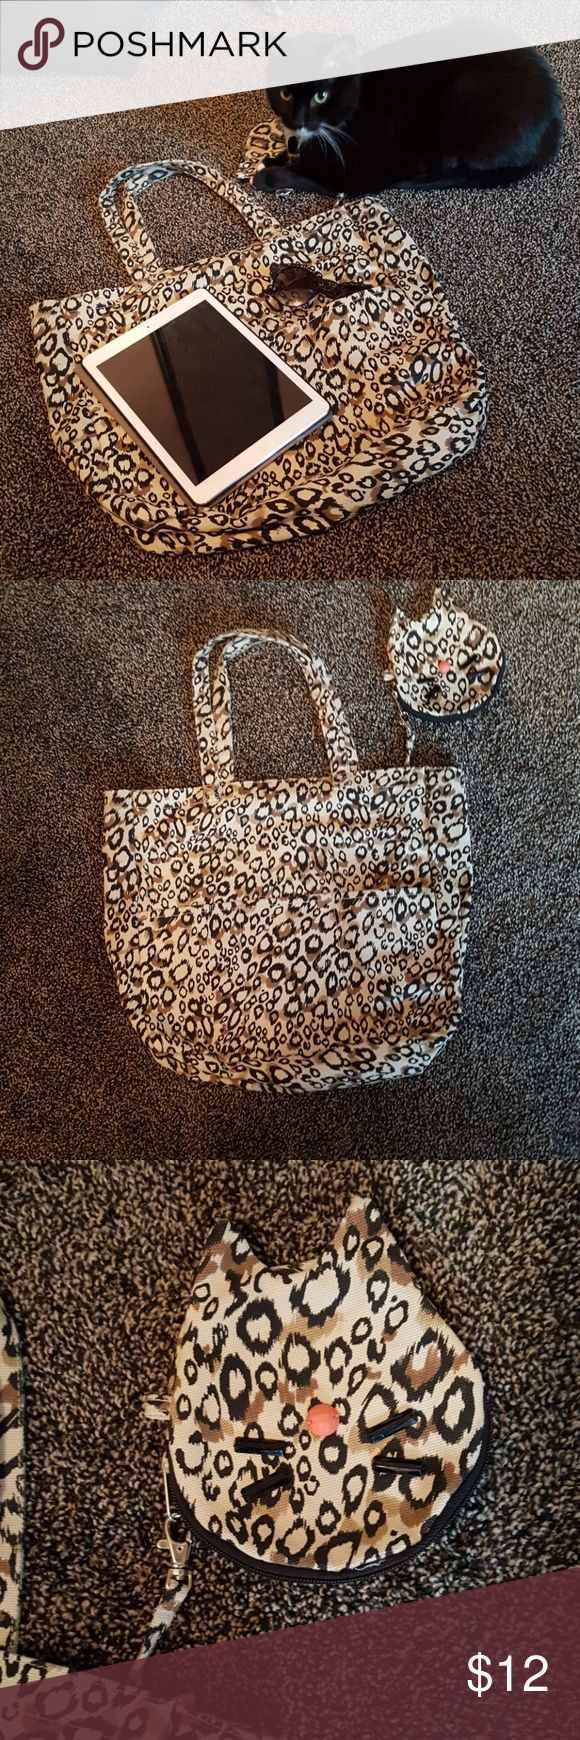 Animal print tote Canvas tote bag with 3 outside pockets and detachable coin purse. Gently used. *cute cat not included 🐱 Bags Totes